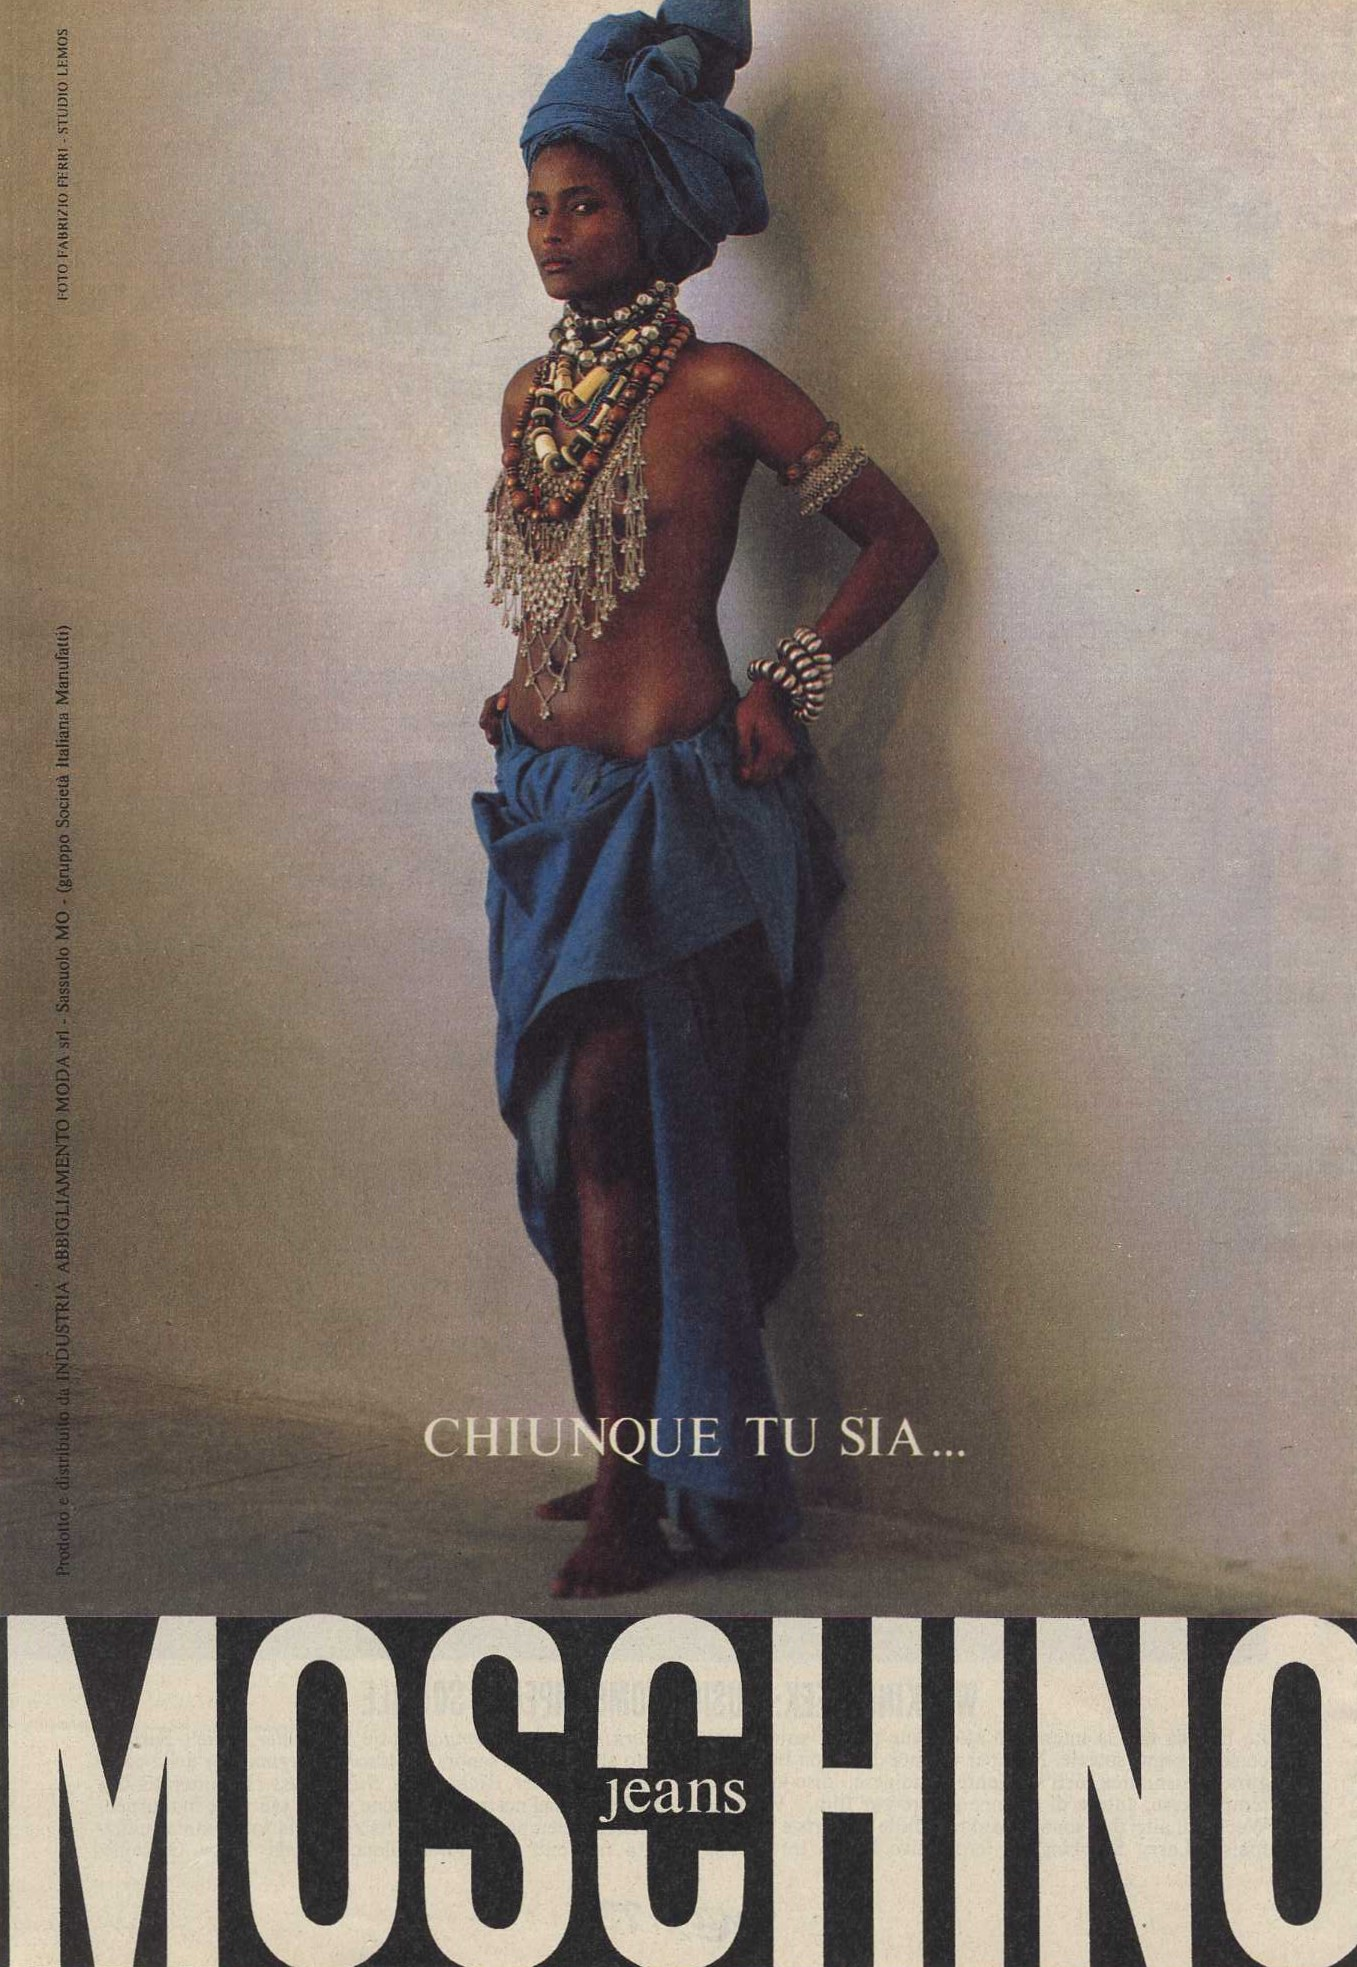 moschino jeans ad campaign photography fabrizio ferri max march 1988 2